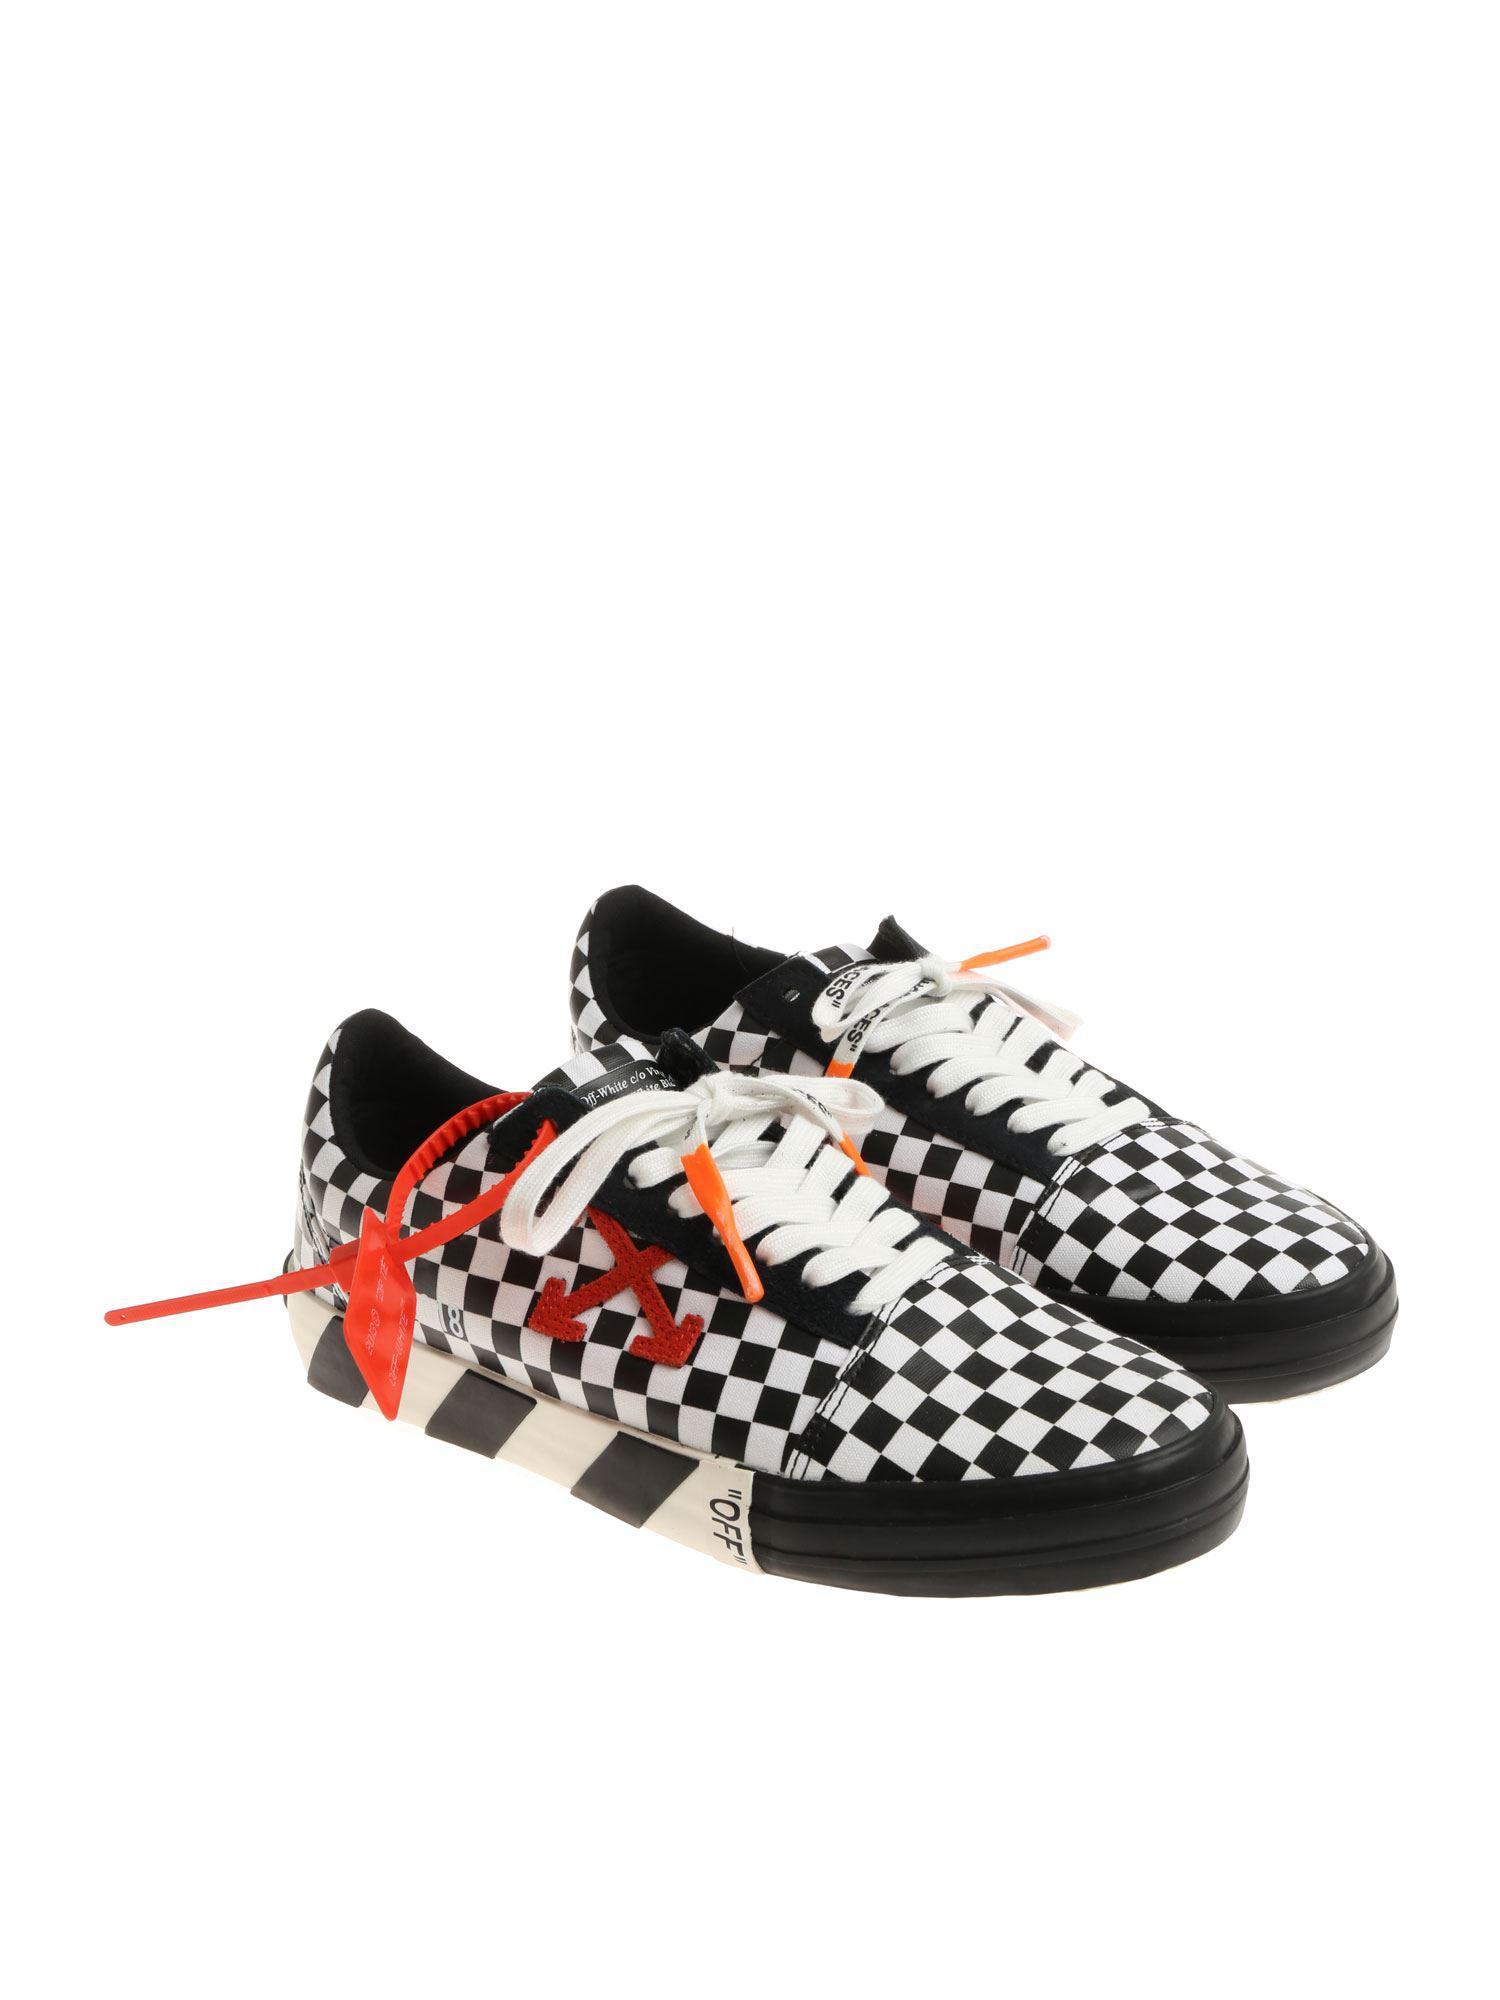 a766fcb1f39 Lyst - Off-White c o Virgil Abloh Low Top Checkered Sneakers for Men